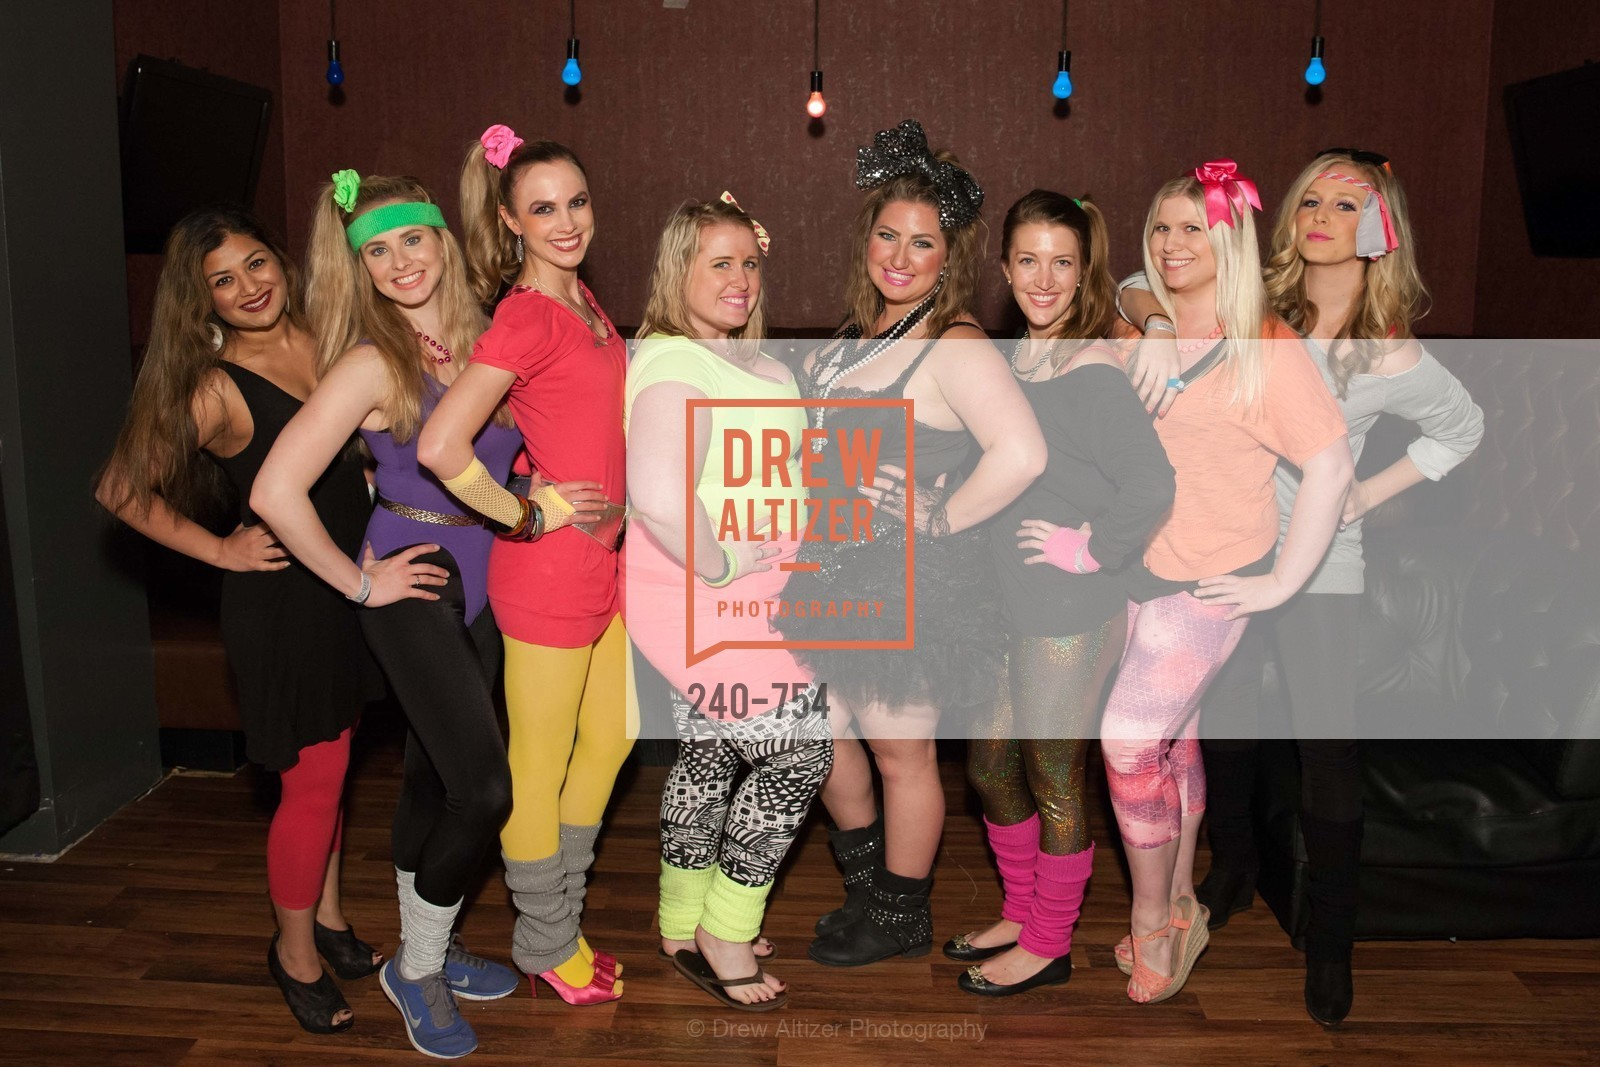 Priya Saiprasad, Elizabeth Sgarrella, Michelle Bertino, Eryn Golden, Annie Benisch, Julia Allyn, Summer McCormick, Cambria Steel, SPINSTERS OF SAN FRANCISCO Party Like It's 1985 Charity Party, US, Fort One Bar & Lounge. 2801 Leavenworth St, May 30th, 2015,Drew Altizer, Drew Altizer Photography, full-service agency, private events, San Francisco photographer, photographer california